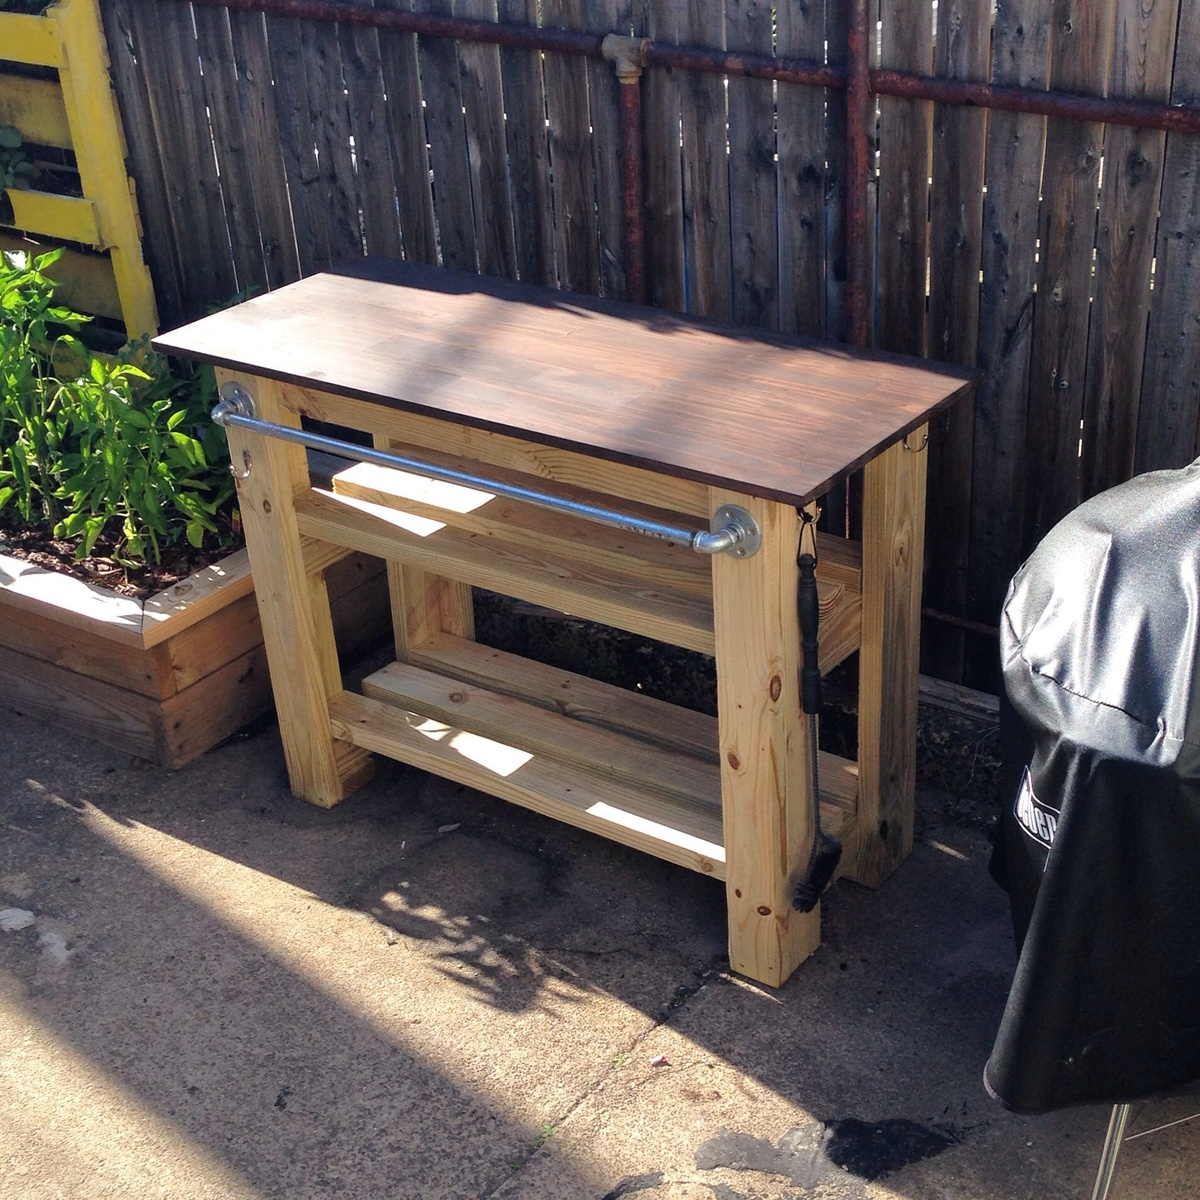 30 Outdoor Kitchens And Grilling Stations: Grill Station - DIY Projects